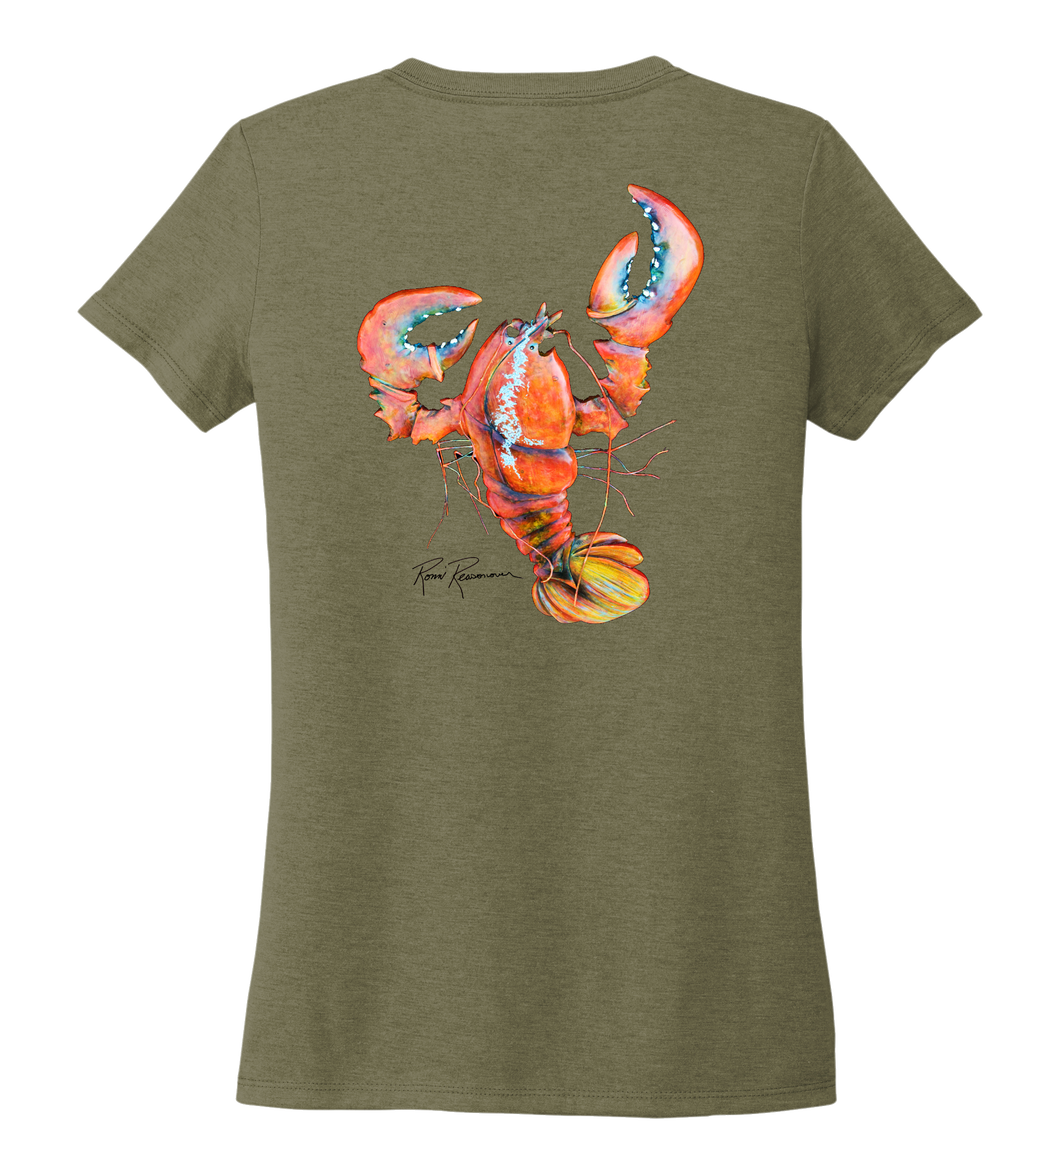 Ronnie Reasonover, The Lobster, Women's V-neck T-shirt in Earthy Green